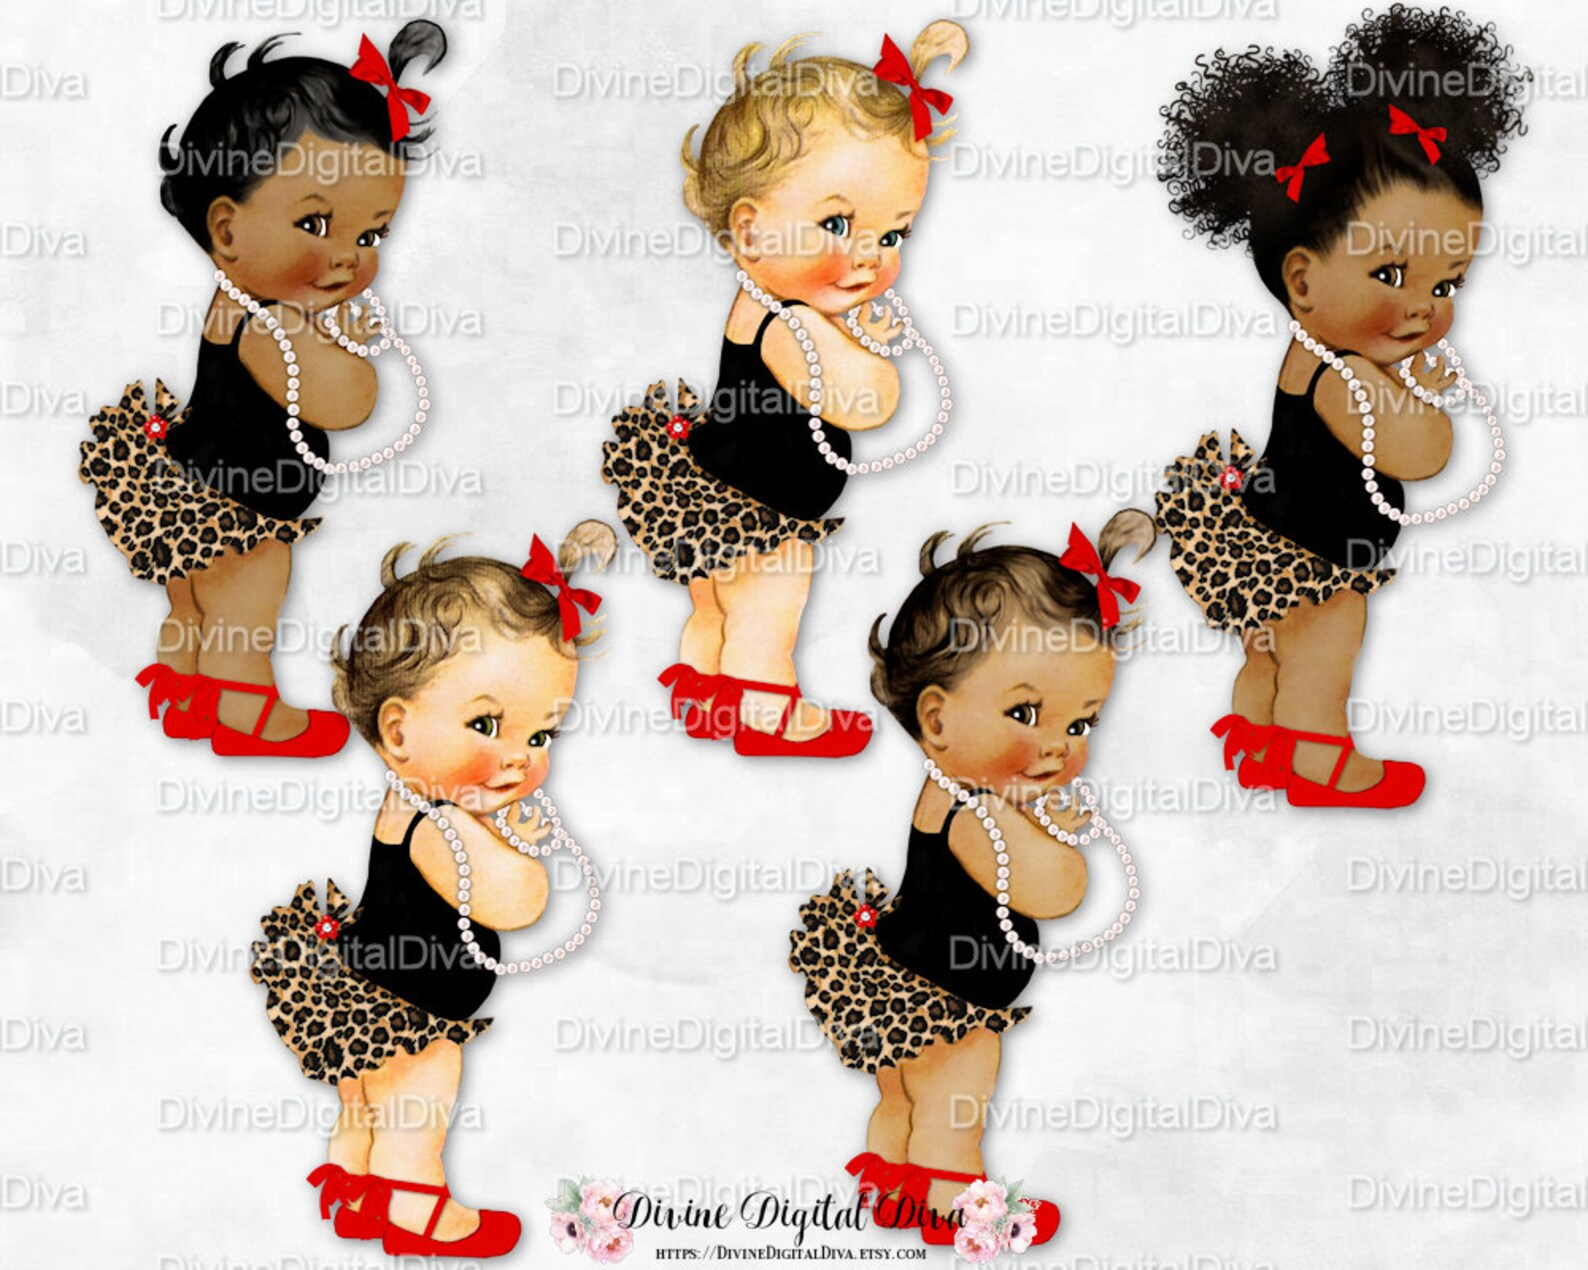 princess ruffle pants leopard print red ballet shoe black shirt | vintage baby girl | 3 skin tones afro puffs | clipart instant